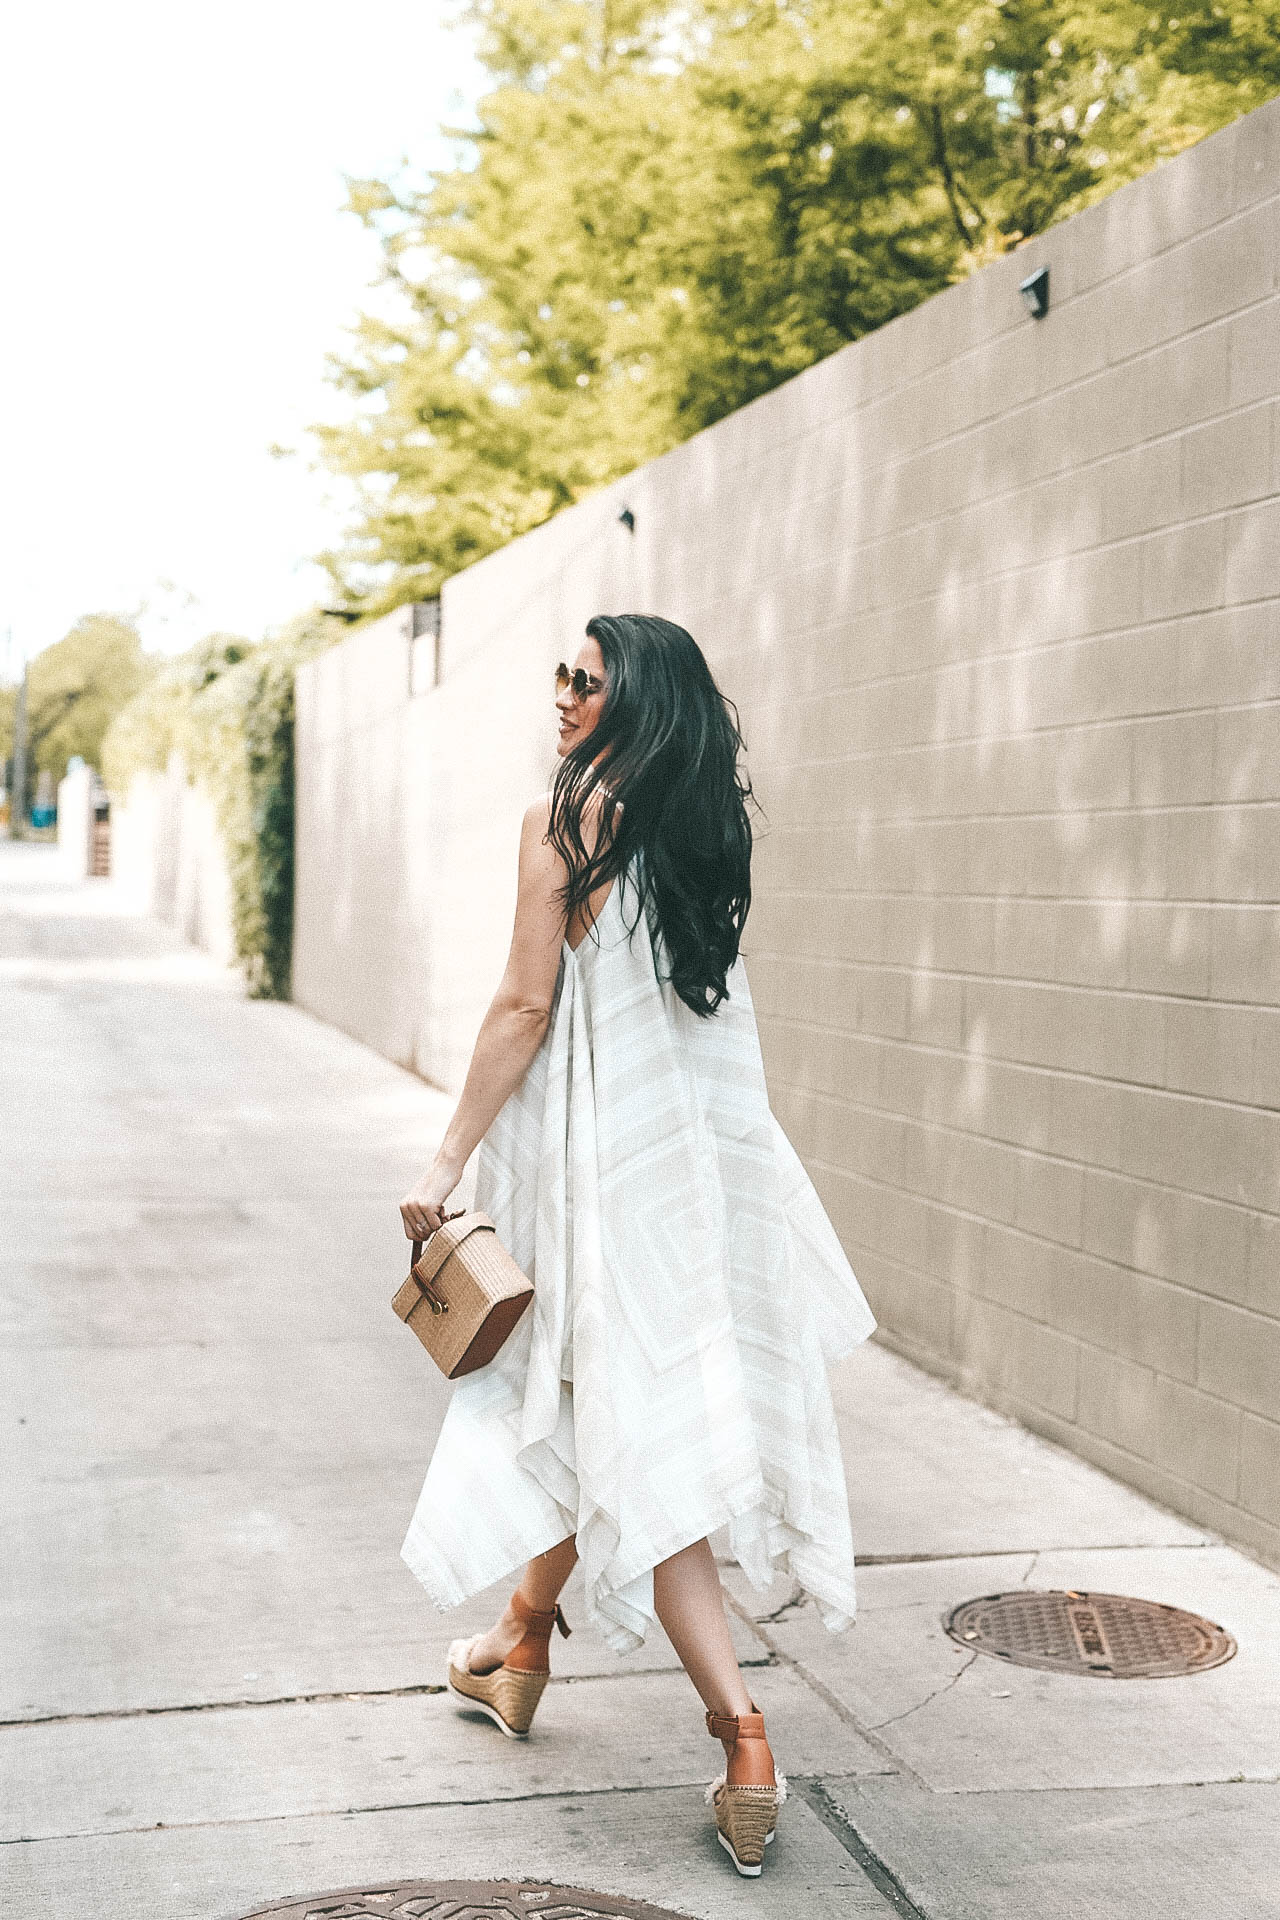 Billy Reid Women's Bandana Dress | Casual Dresses | how to style a bandana dress | summer dresses for women | summer outfits | summer fashion || Dressed to Kill #bandanadress #dresses #summerdress #casualdress #summerfashion - The Billy Reid Bandana Dress featured by popular Austin fashion blogger, Dressed to Kill